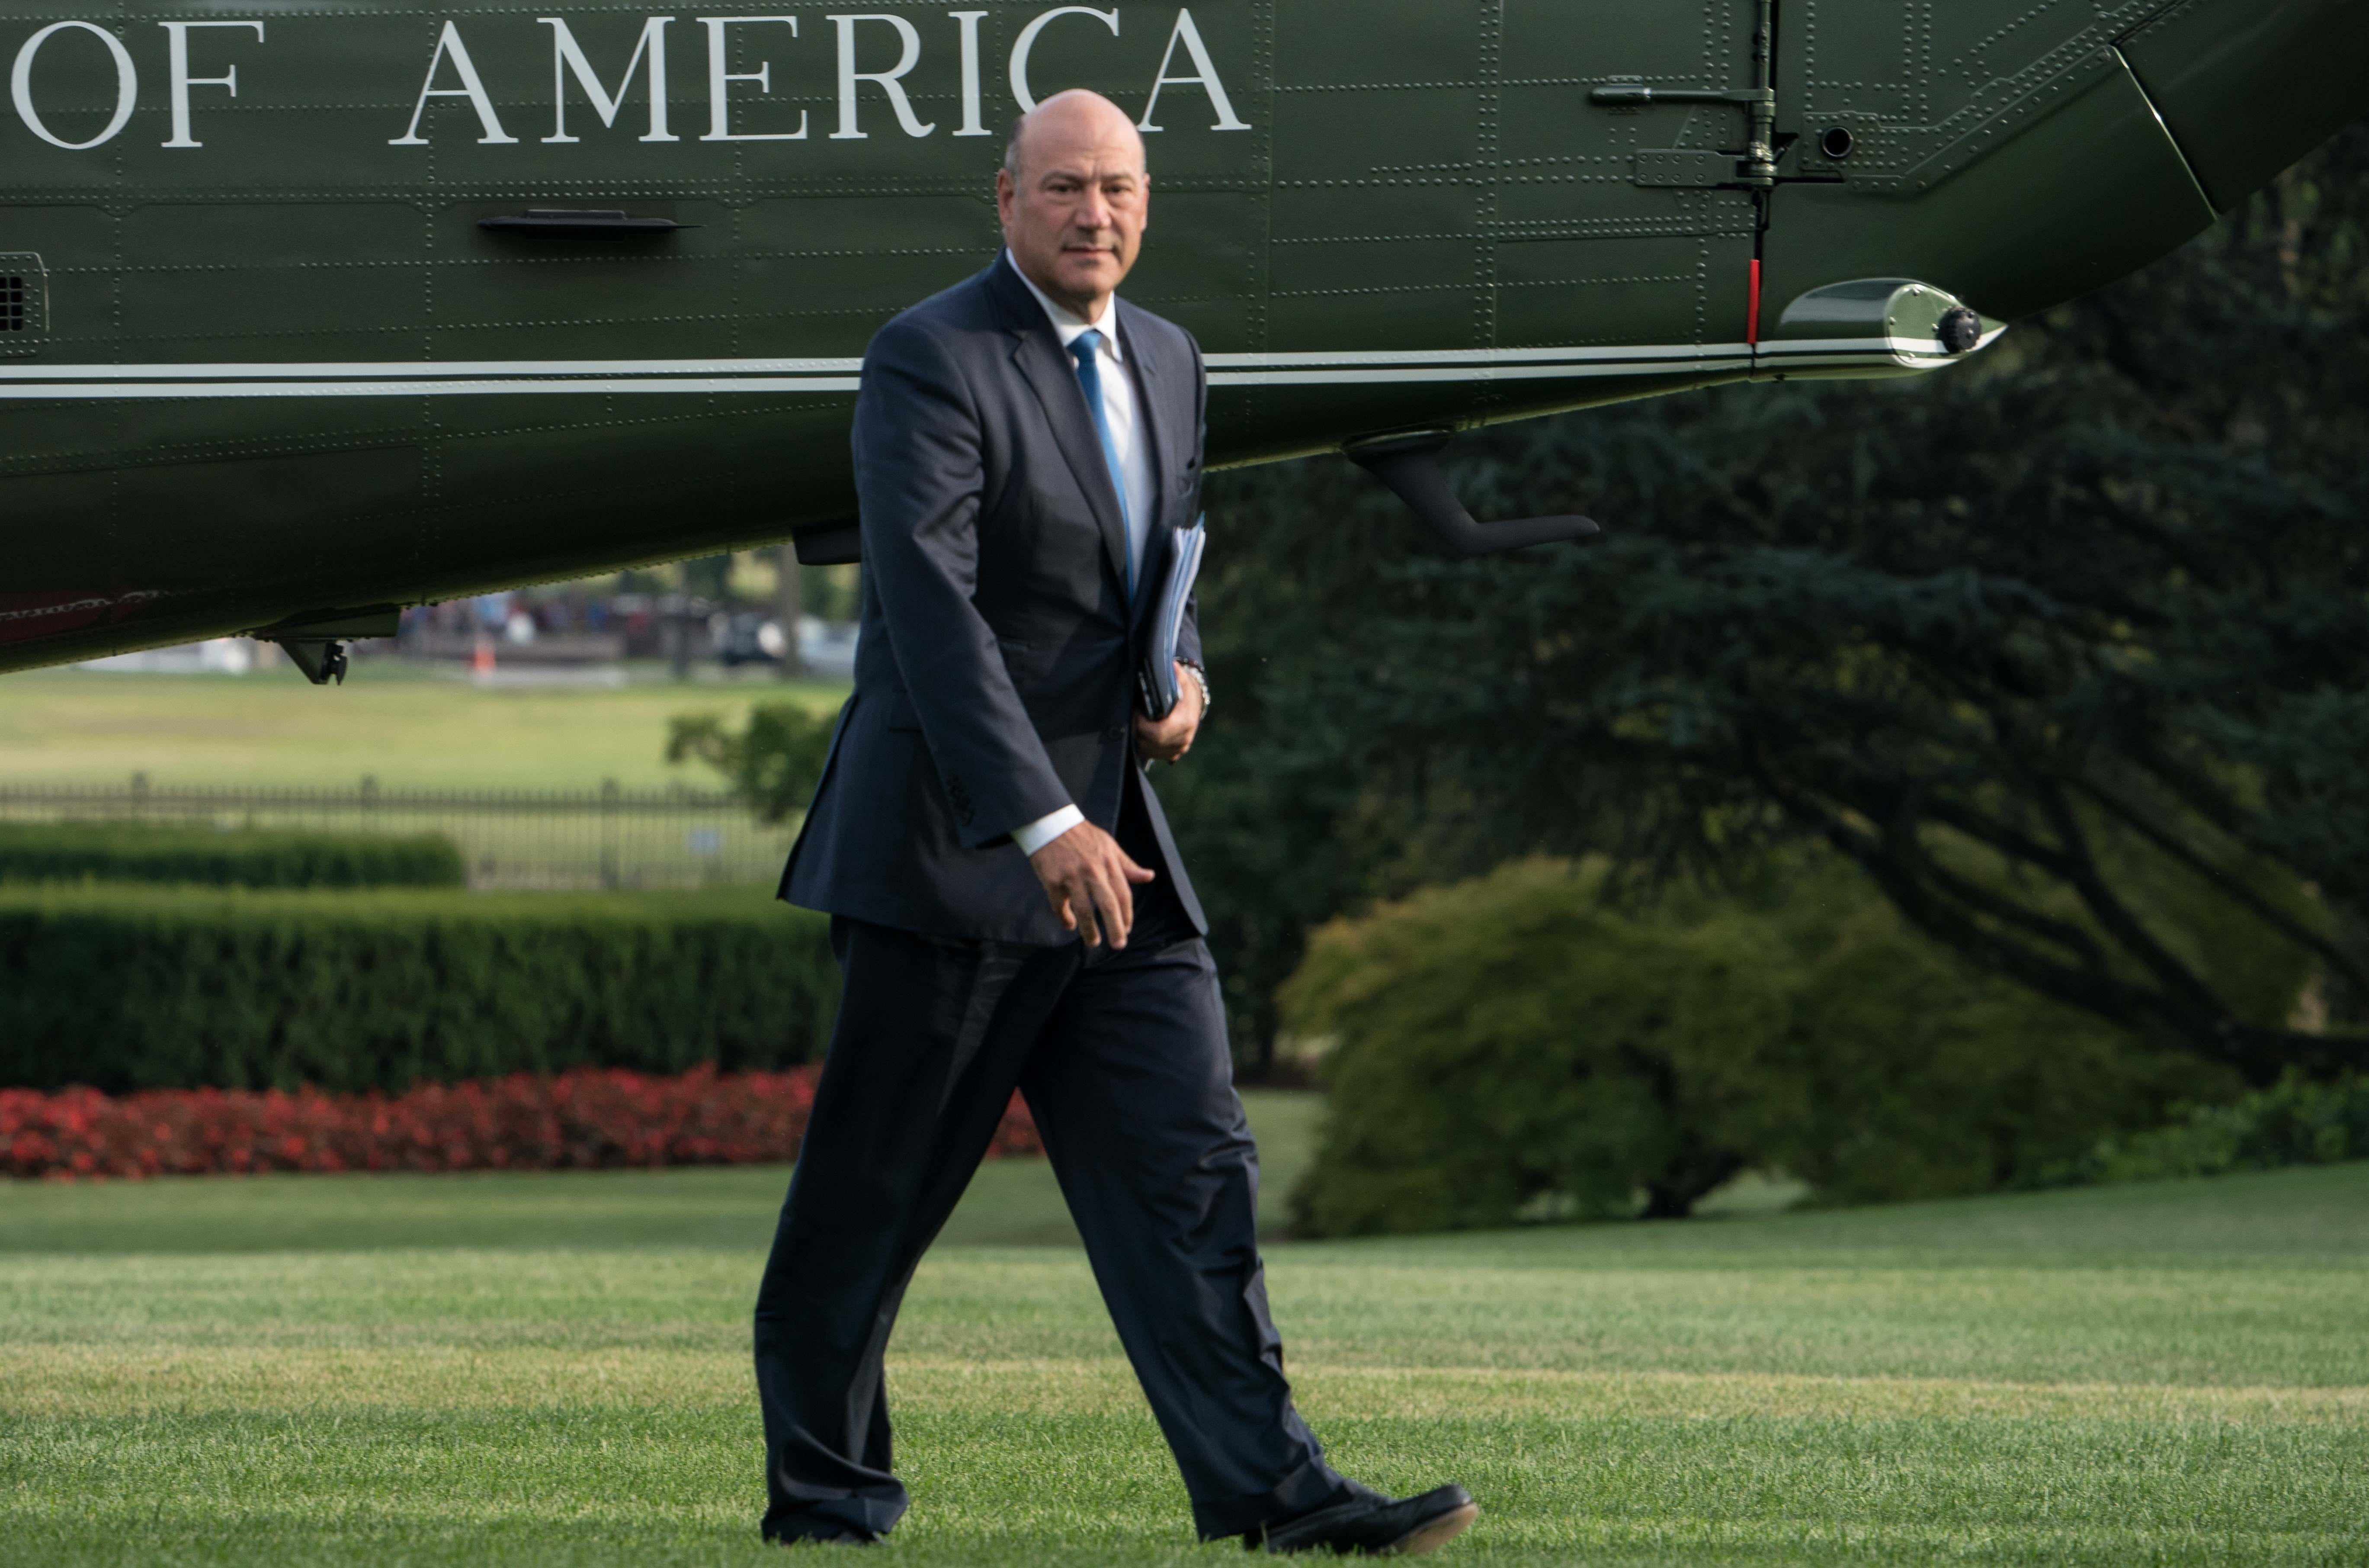 White House economic adviser Gary Cohn walks to the White House in Washington, DC, on August 30, 2017 upon return from Springfield, Missouri, where President Donald Trump spoke about tax reform.